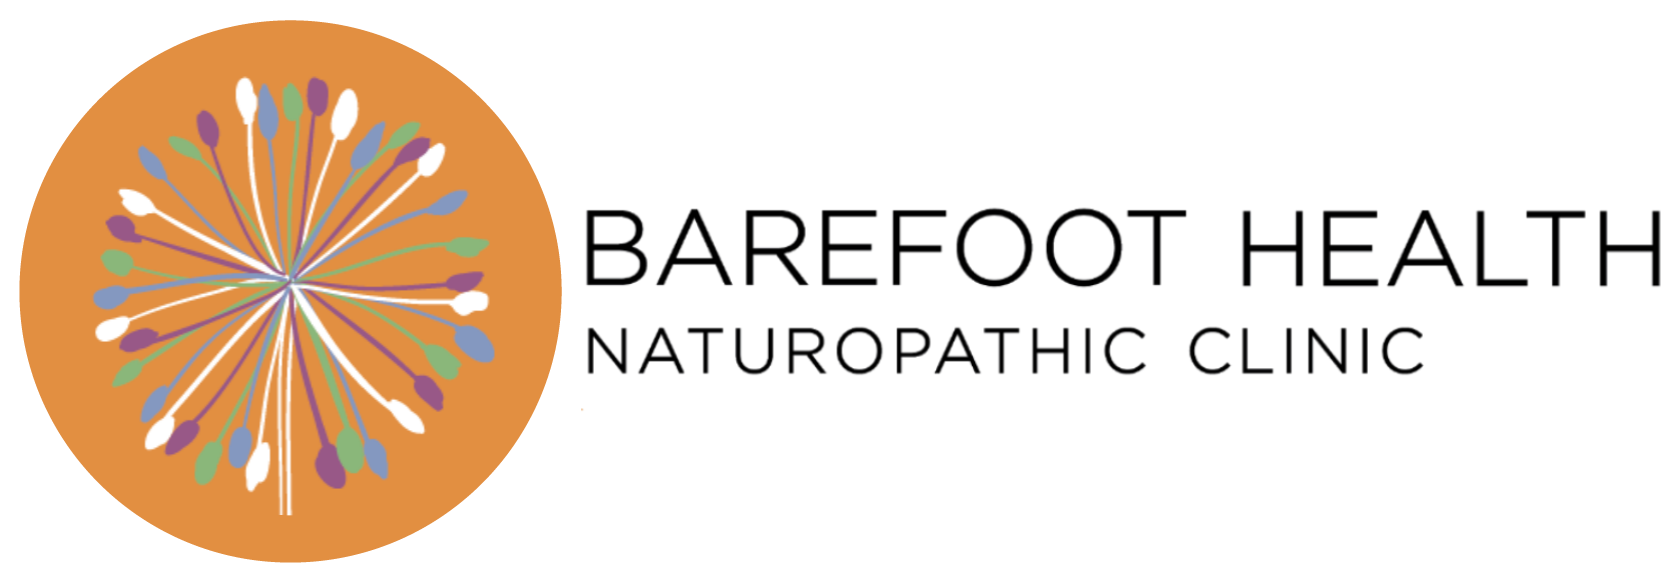 Barefoot-Health---Orange-logo-no-bkg2